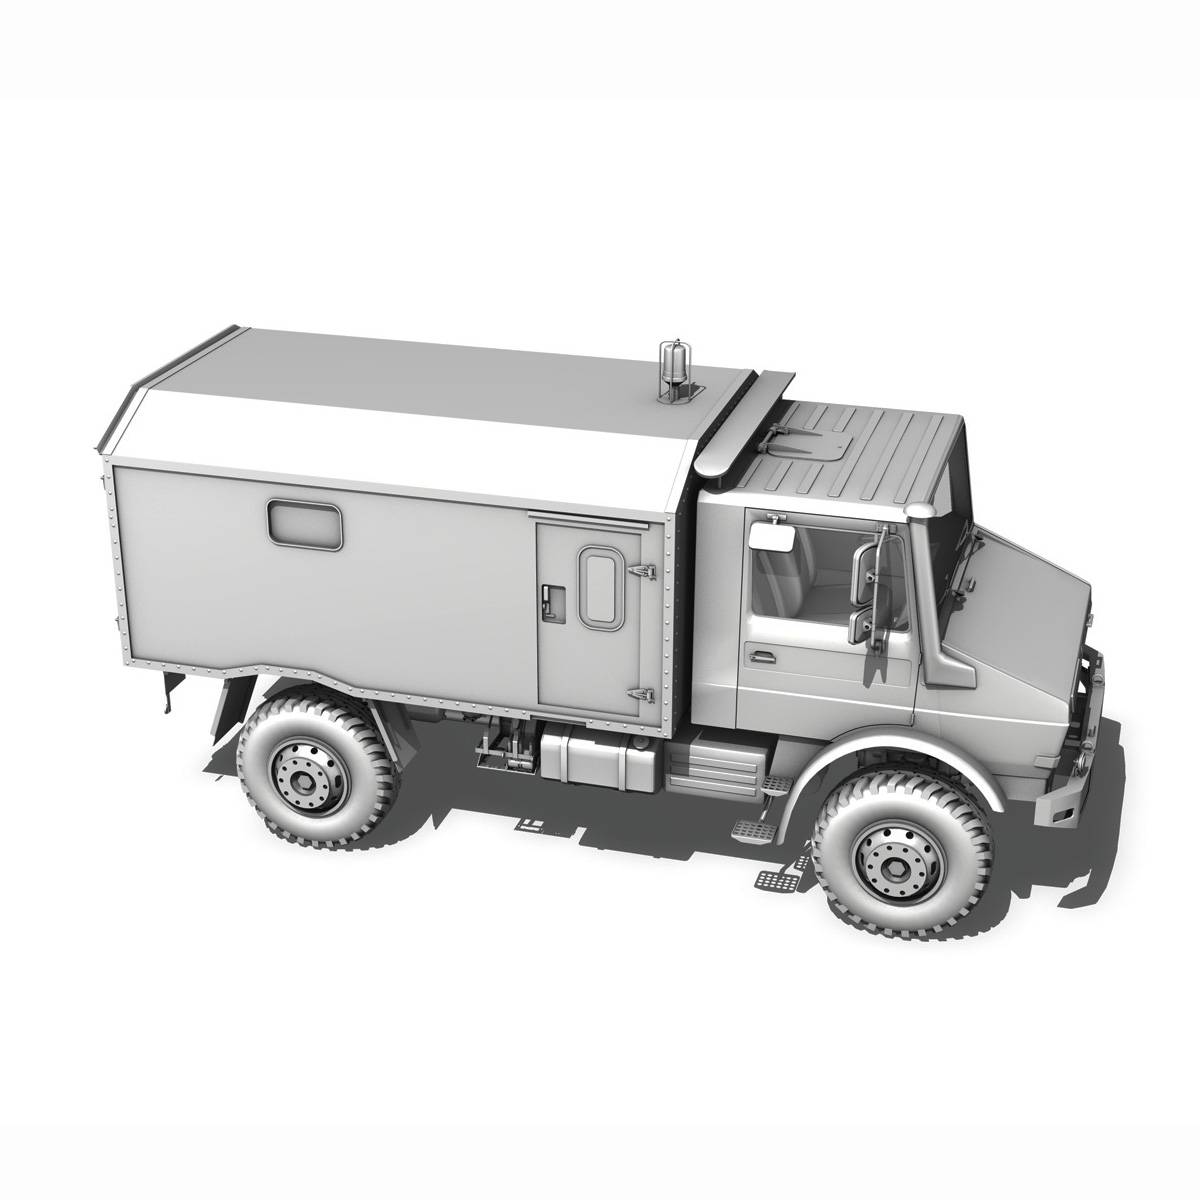 mercedes benz unimog u1300l – ambulance trailer 3d model 3ds fbx c4d lwo obj 189597